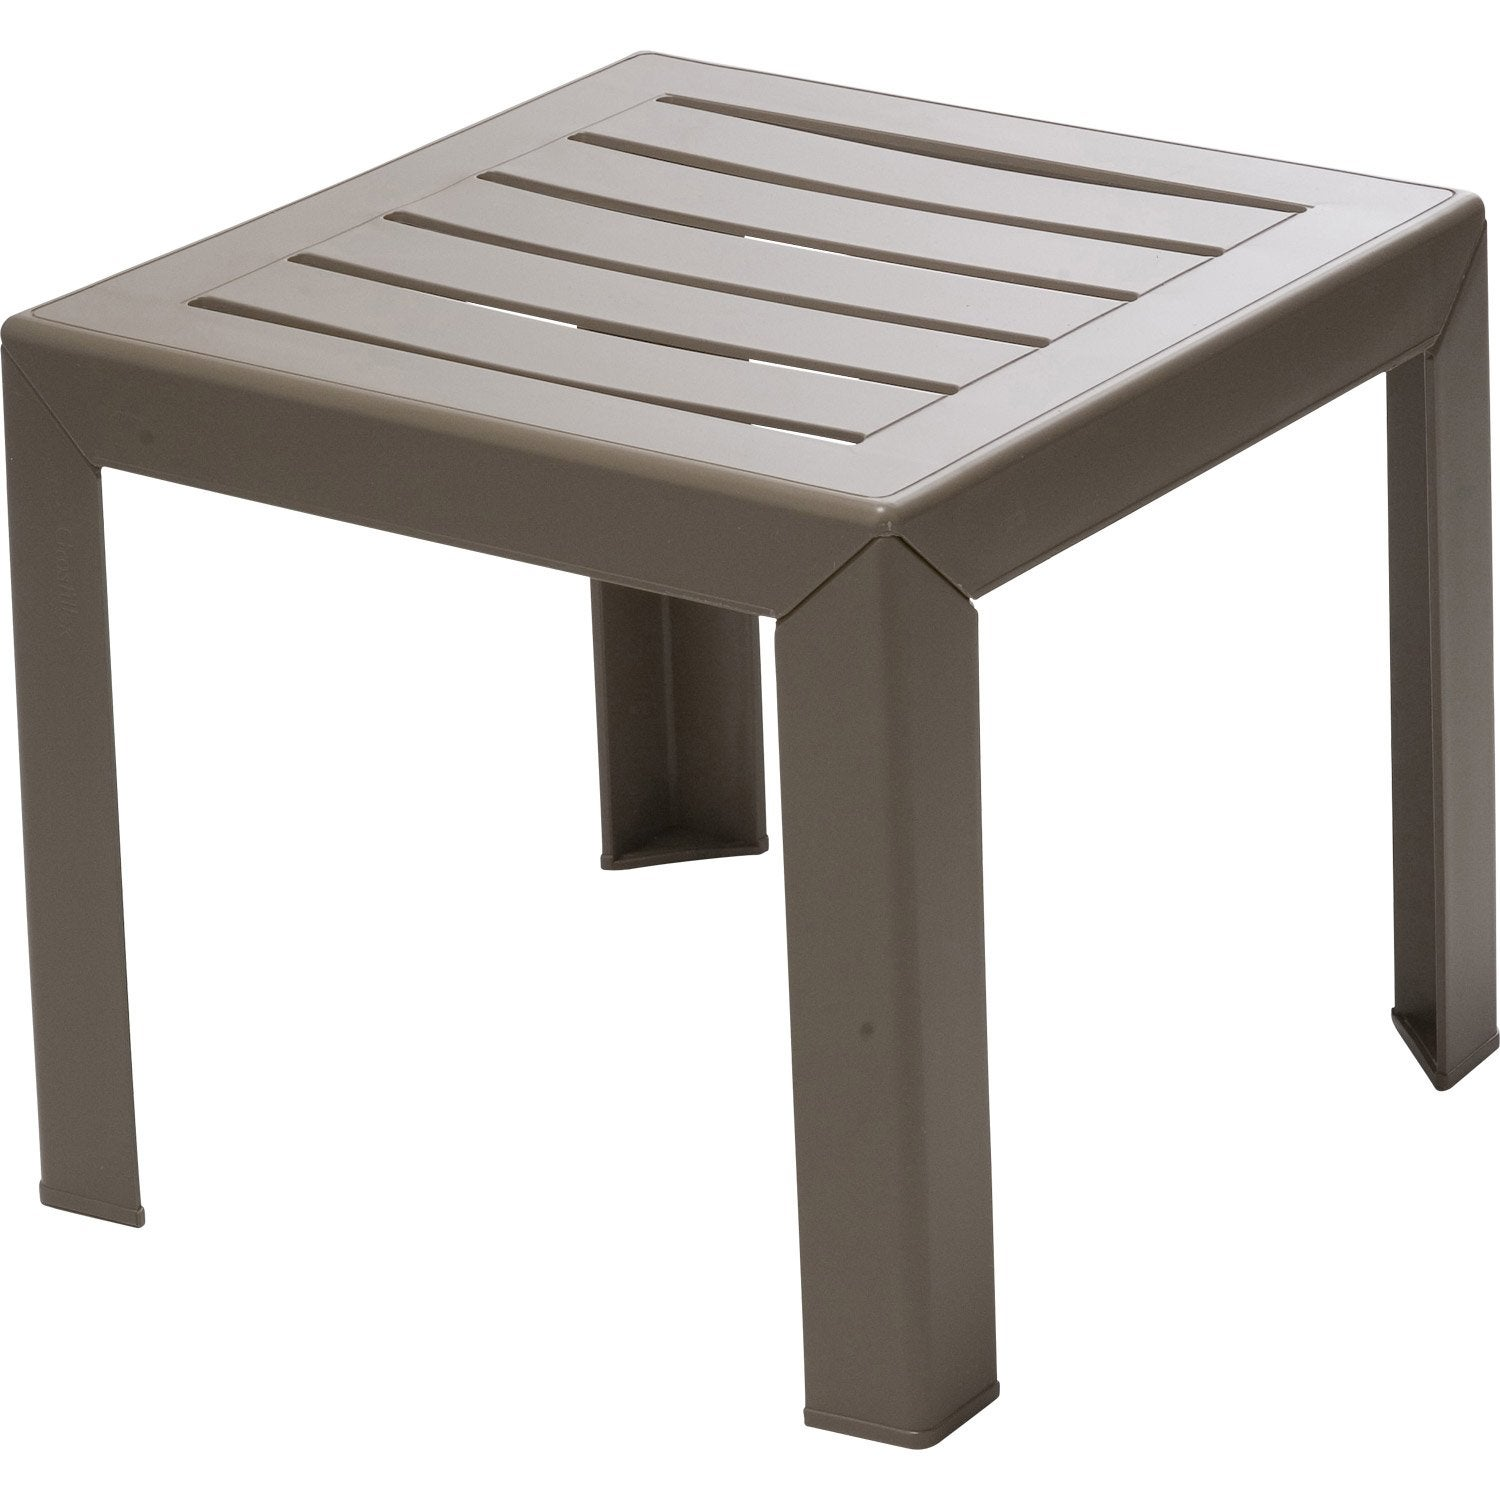 Table basse de jardin en plastique blanc - Table basse carree blanc ...